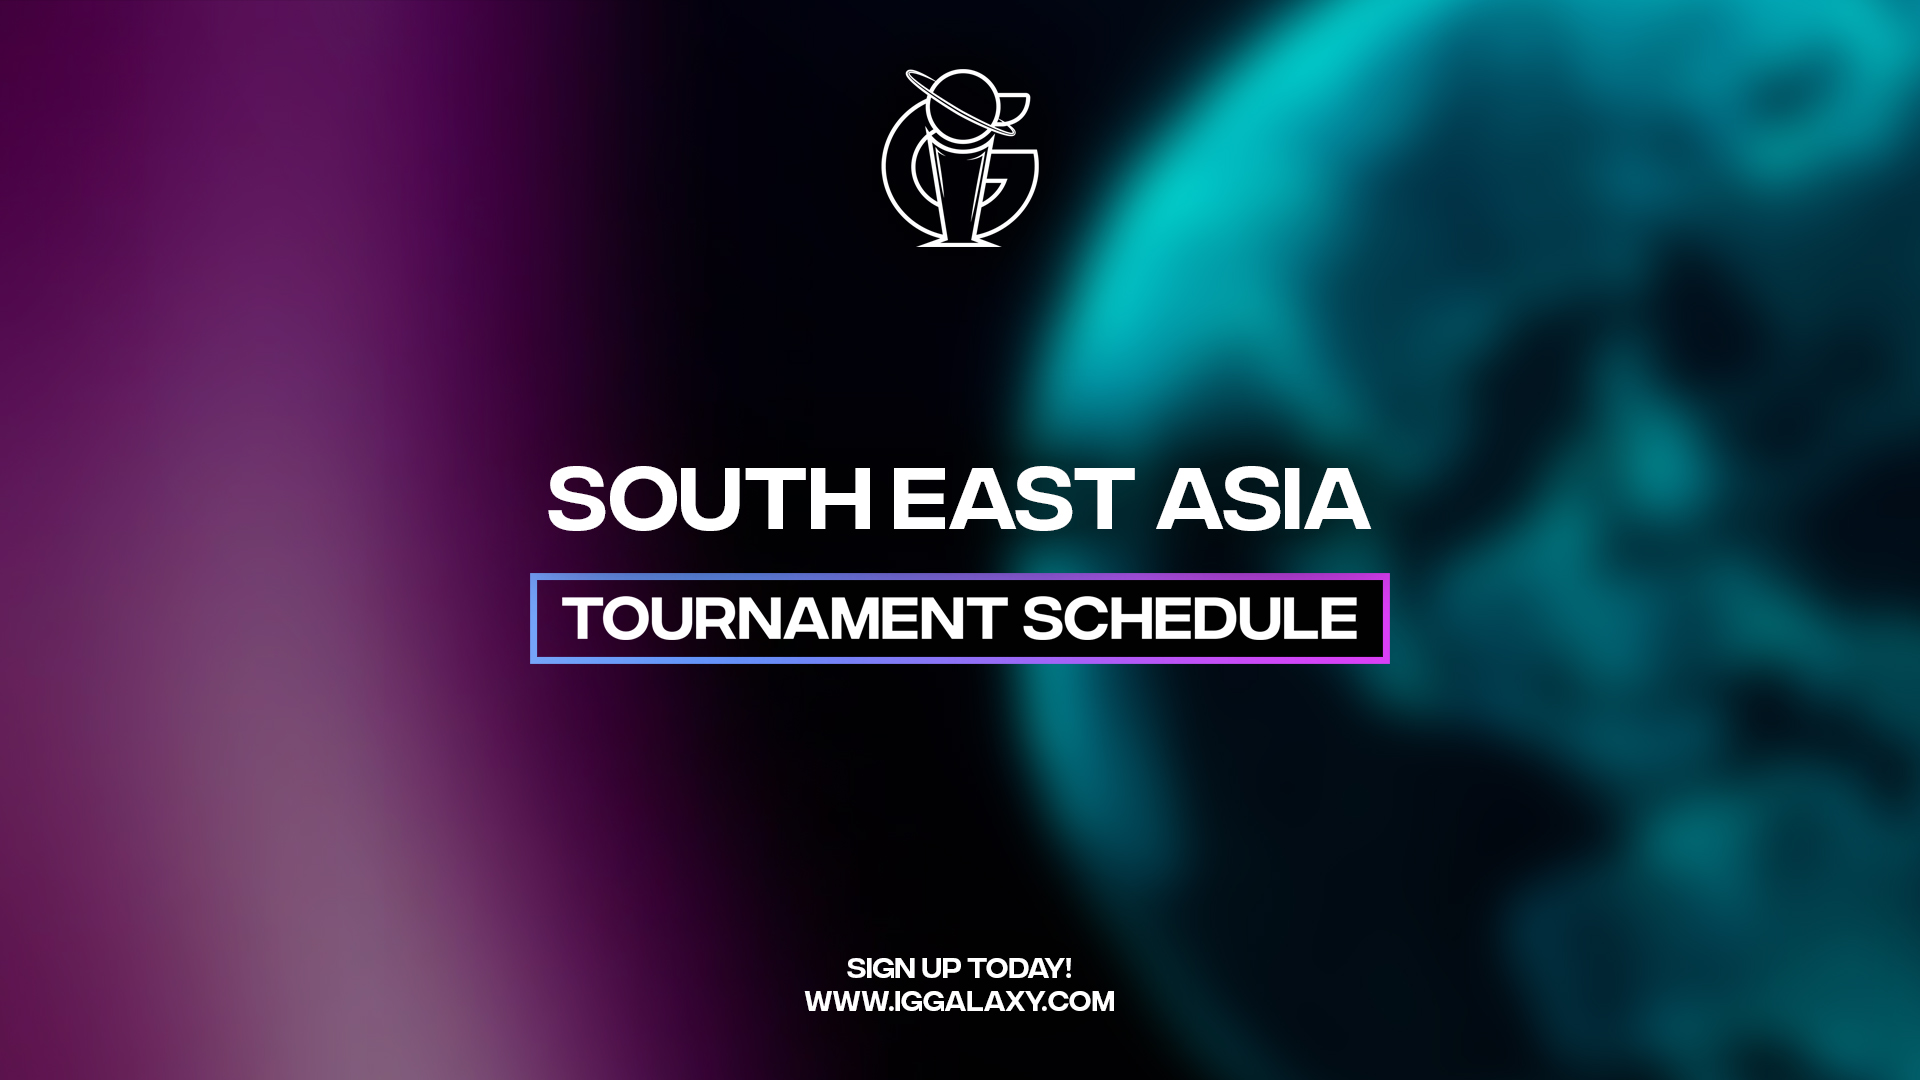 Call of Duty: Mobile (Garena) schedule for competitive CODM players in Southeast Asia!